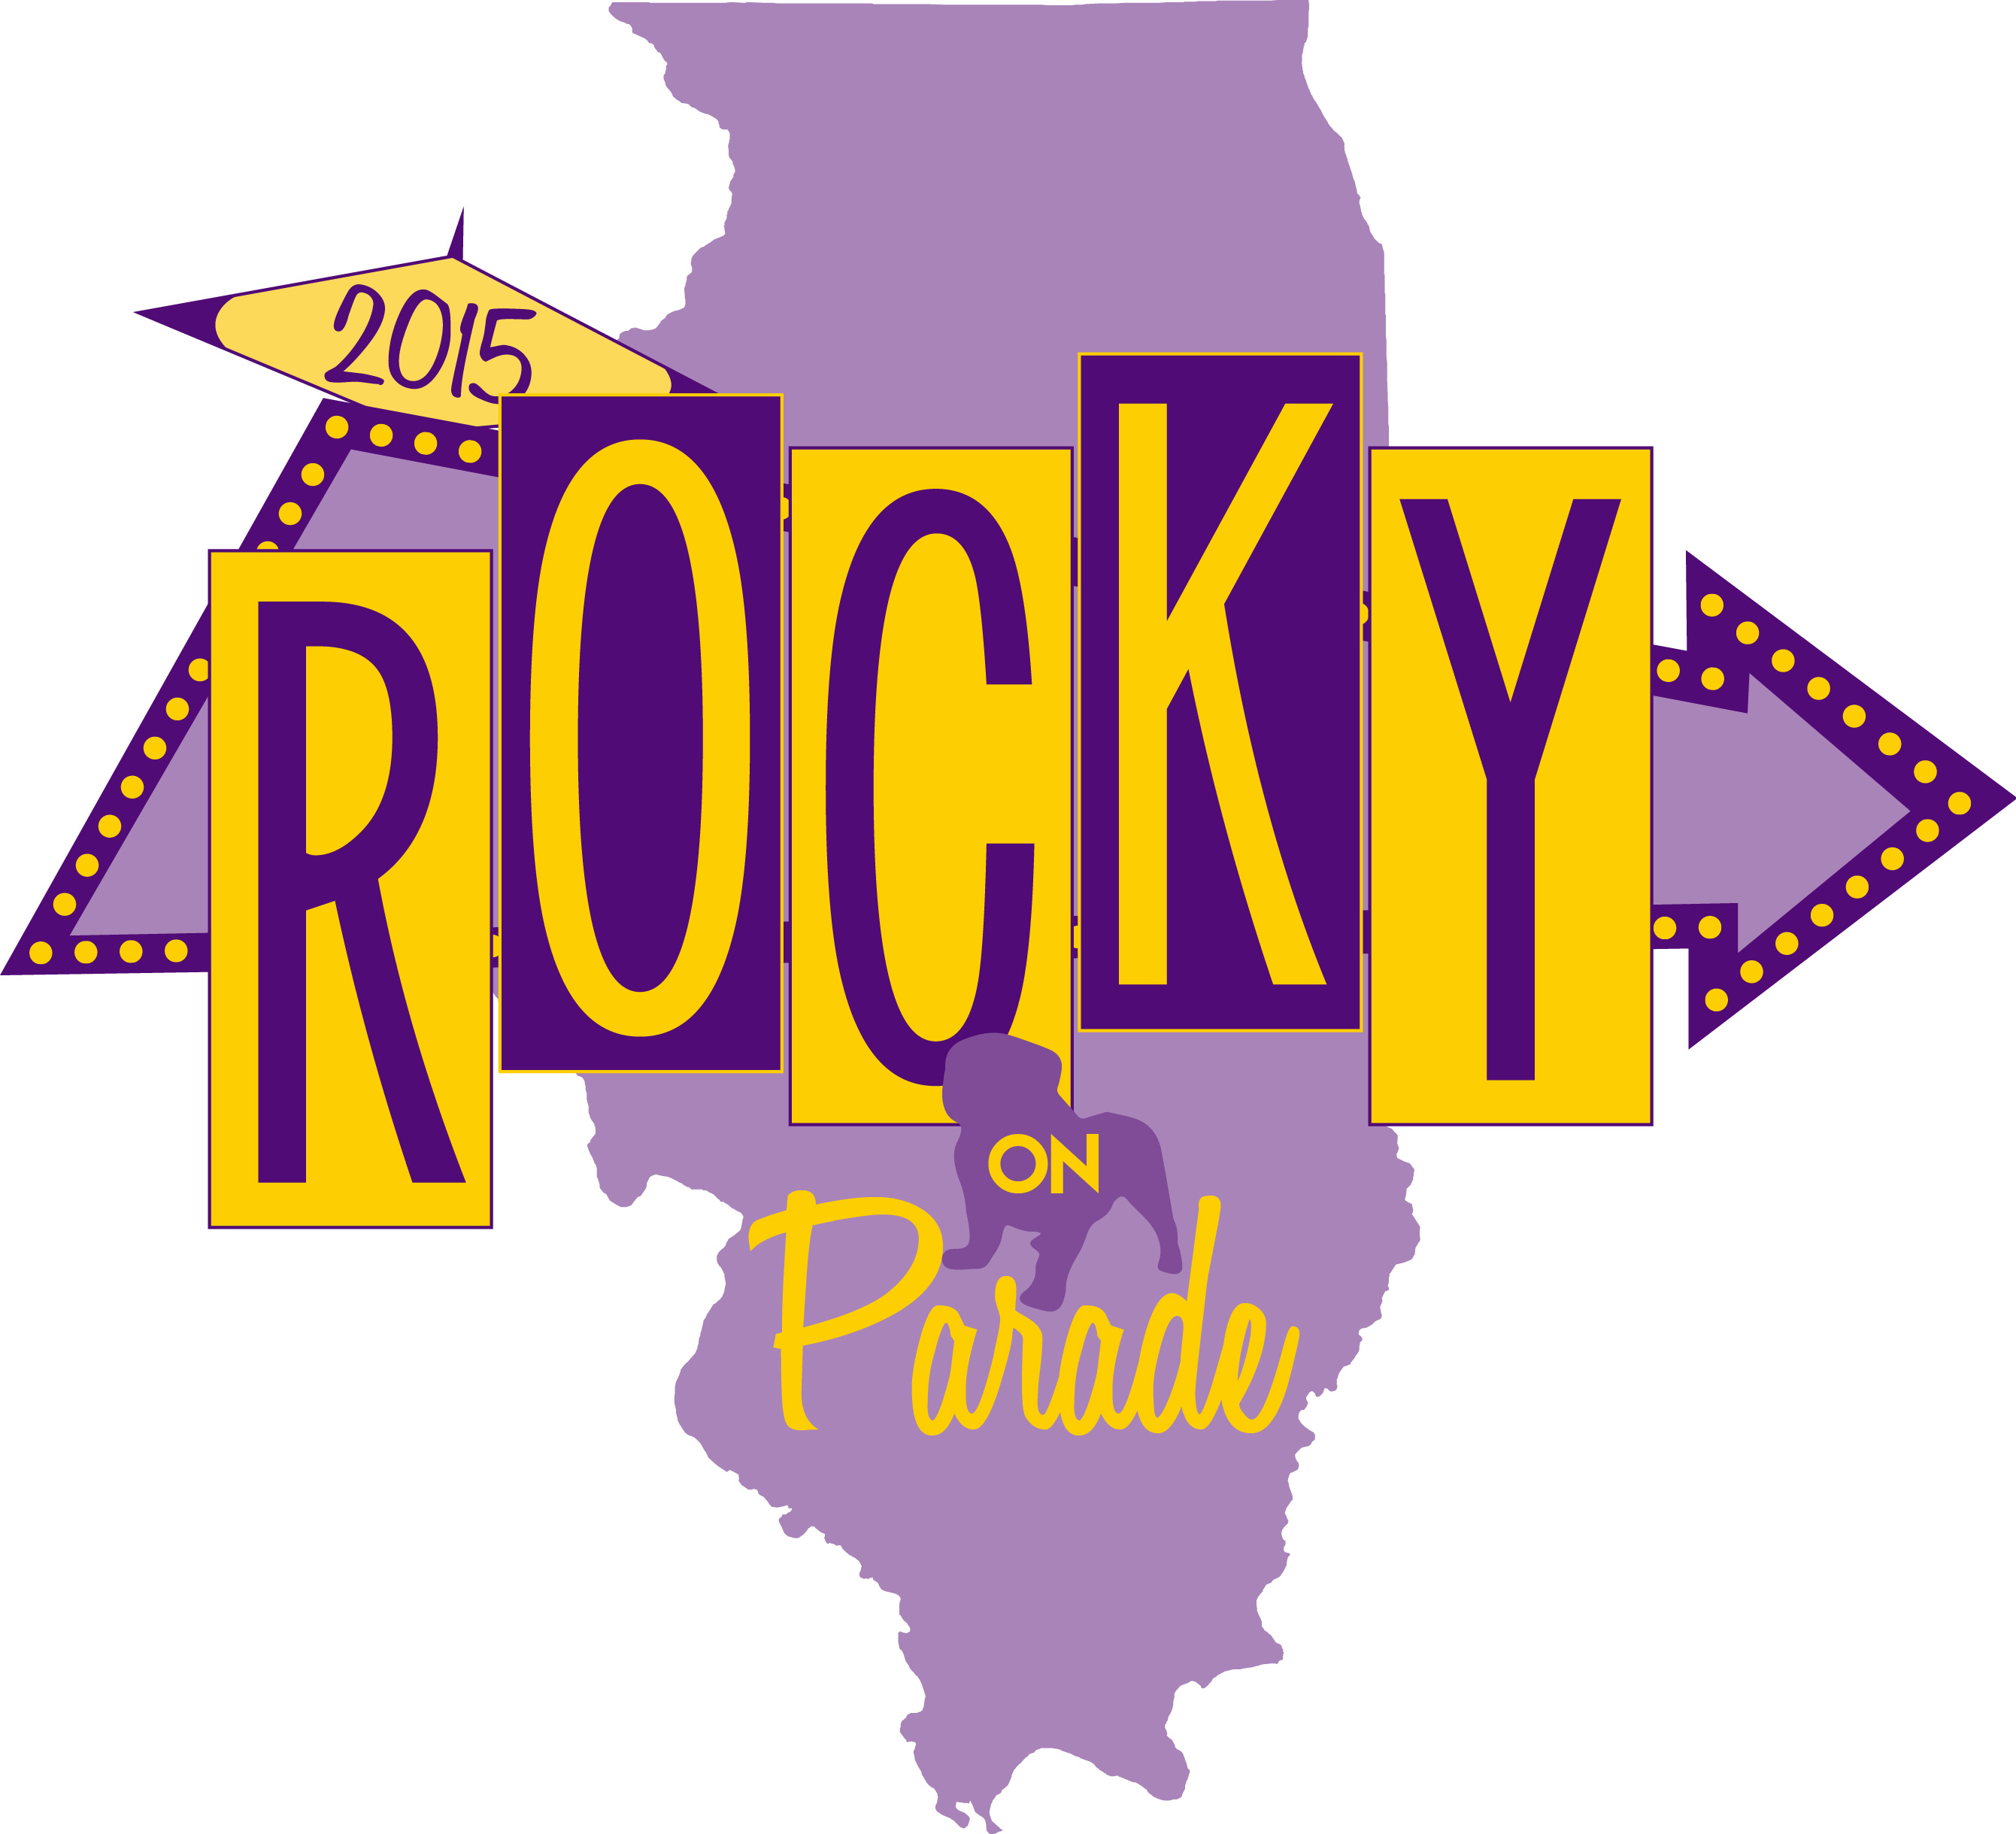 Rocky on Parade logo and link to homepage